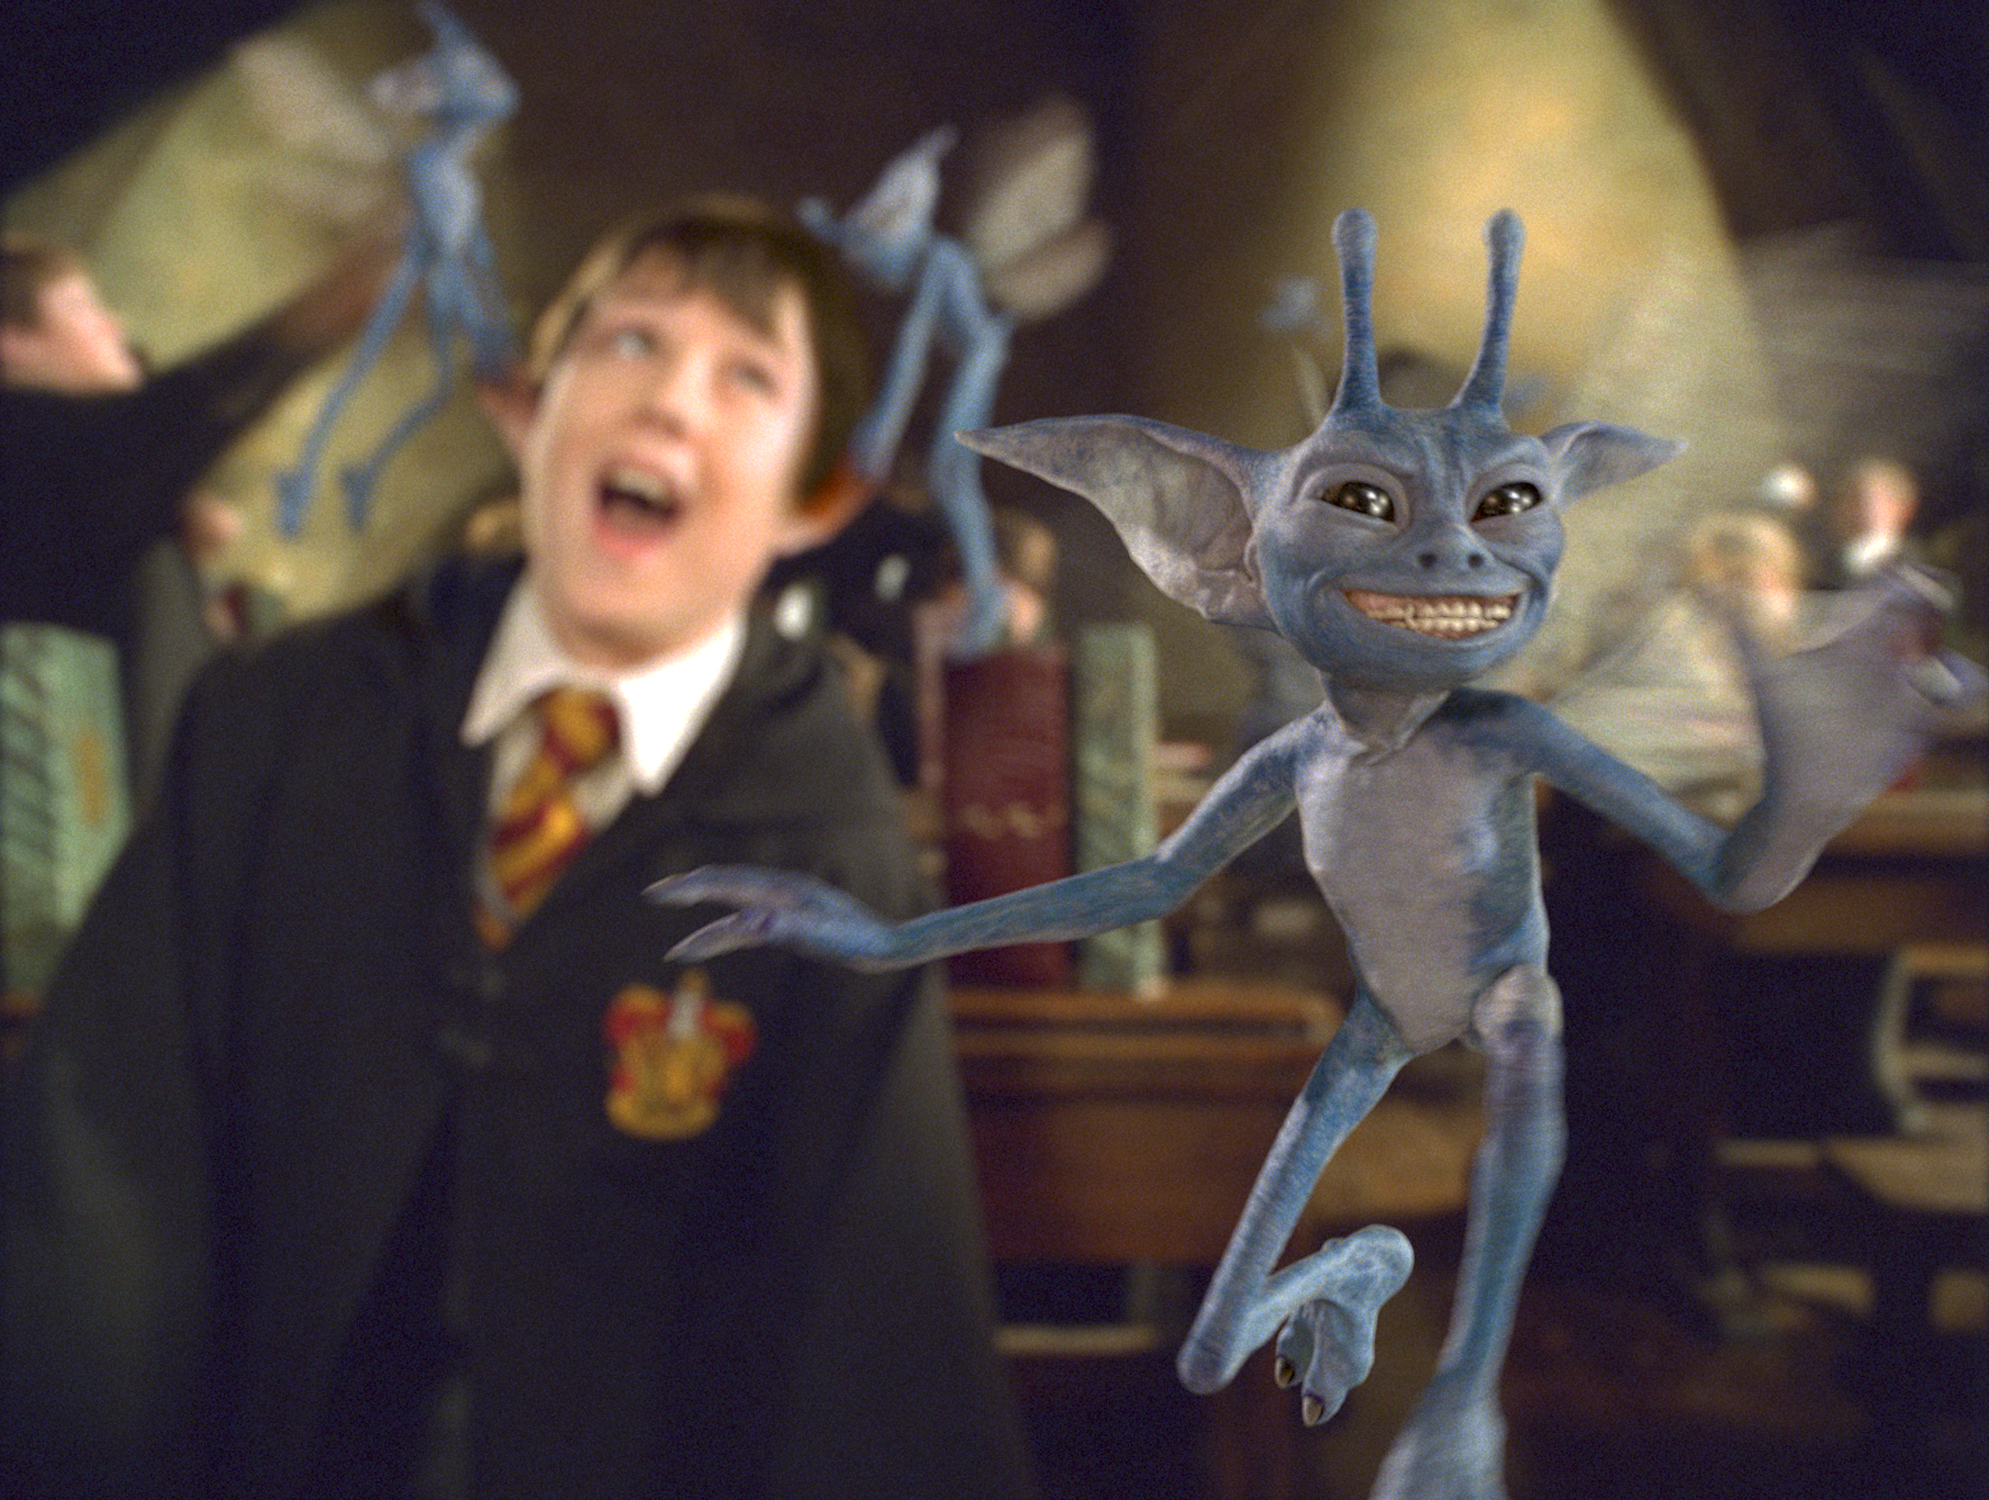 A close-up of a Cornish pixie during Lockhart's Defence Against the Dark Arts class